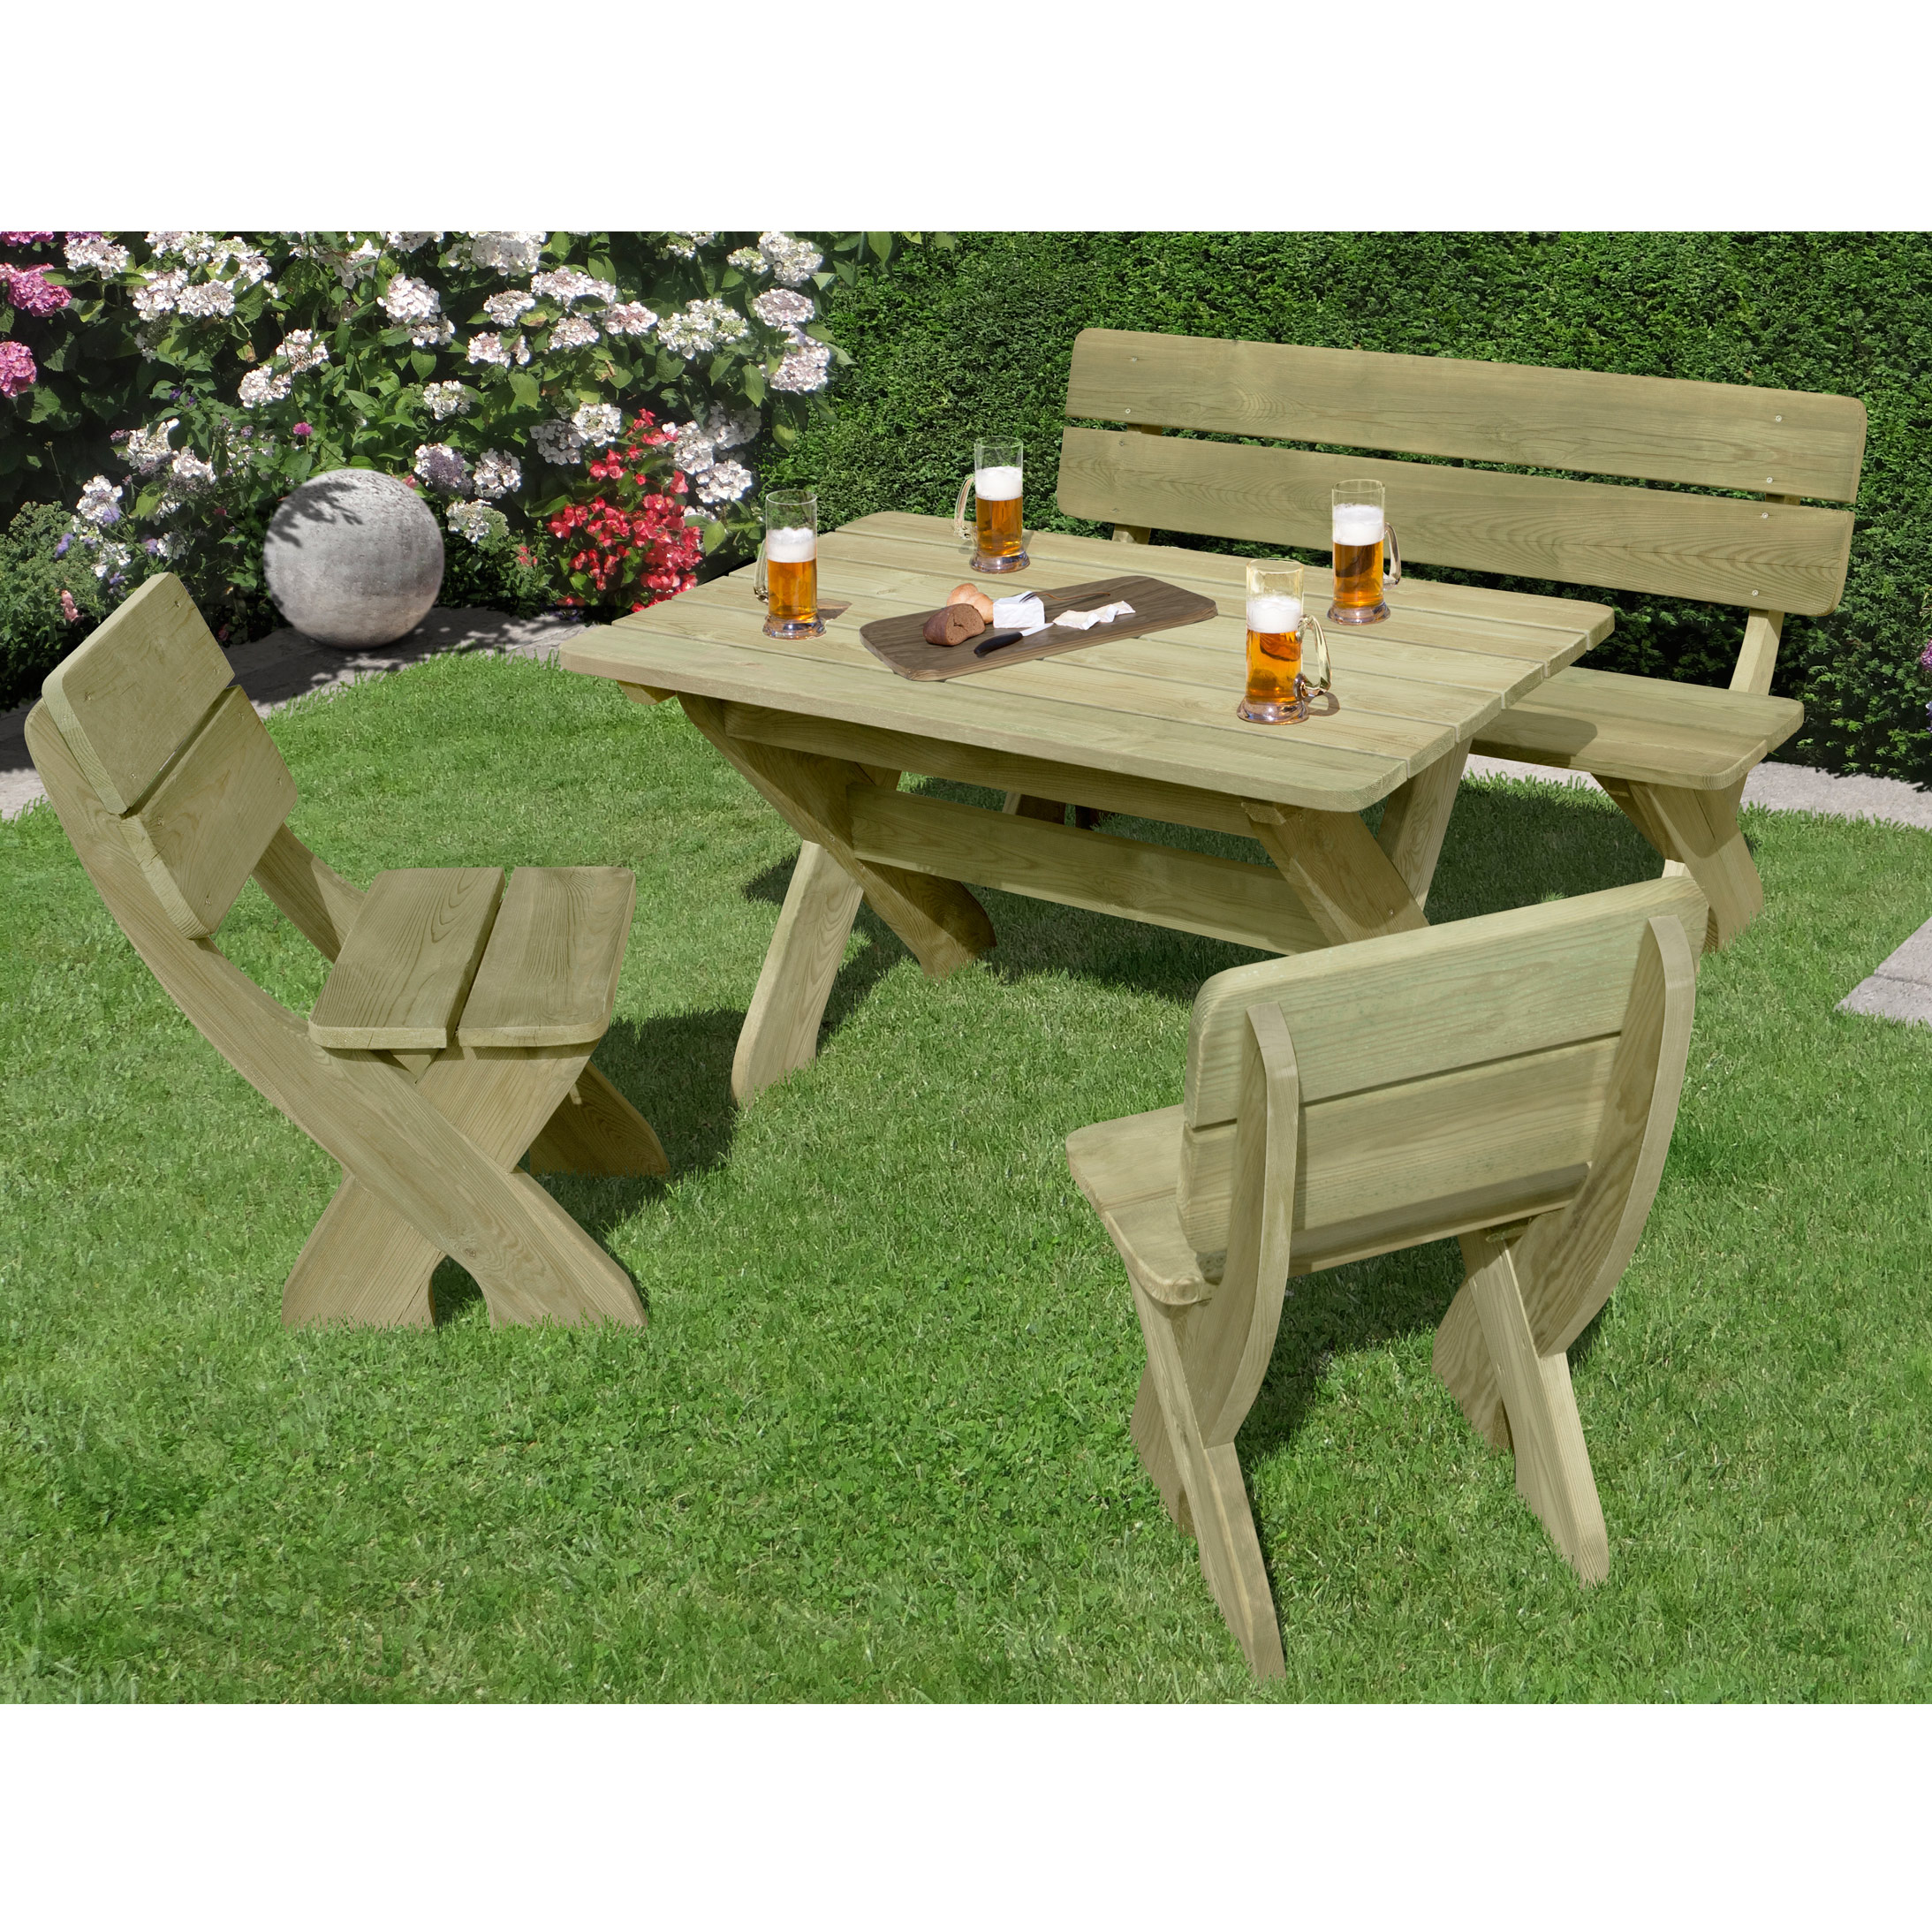 sitzgruppe toskana holz garten gartenm bel wetterfest. Black Bedroom Furniture Sets. Home Design Ideas